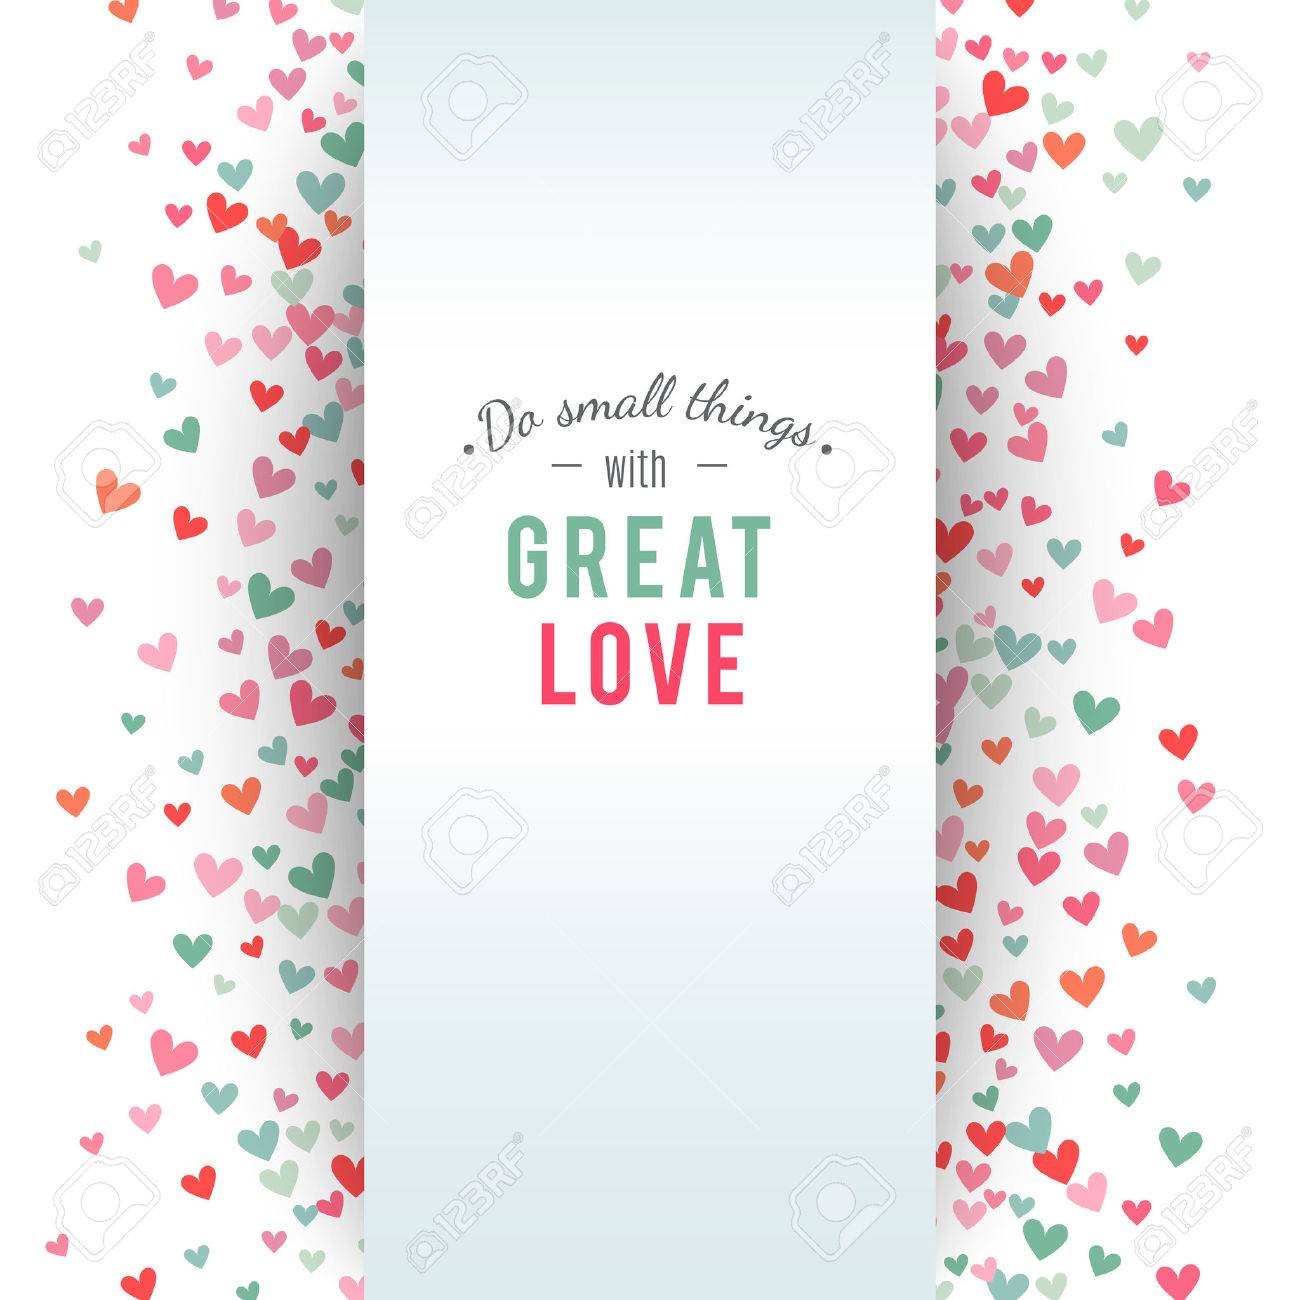 Romantic pink and blue heart background. Vector illustration for holiday design. Many flying hearts on white background. For wedding card, valentine day greetings, lovely frame. - 51850025